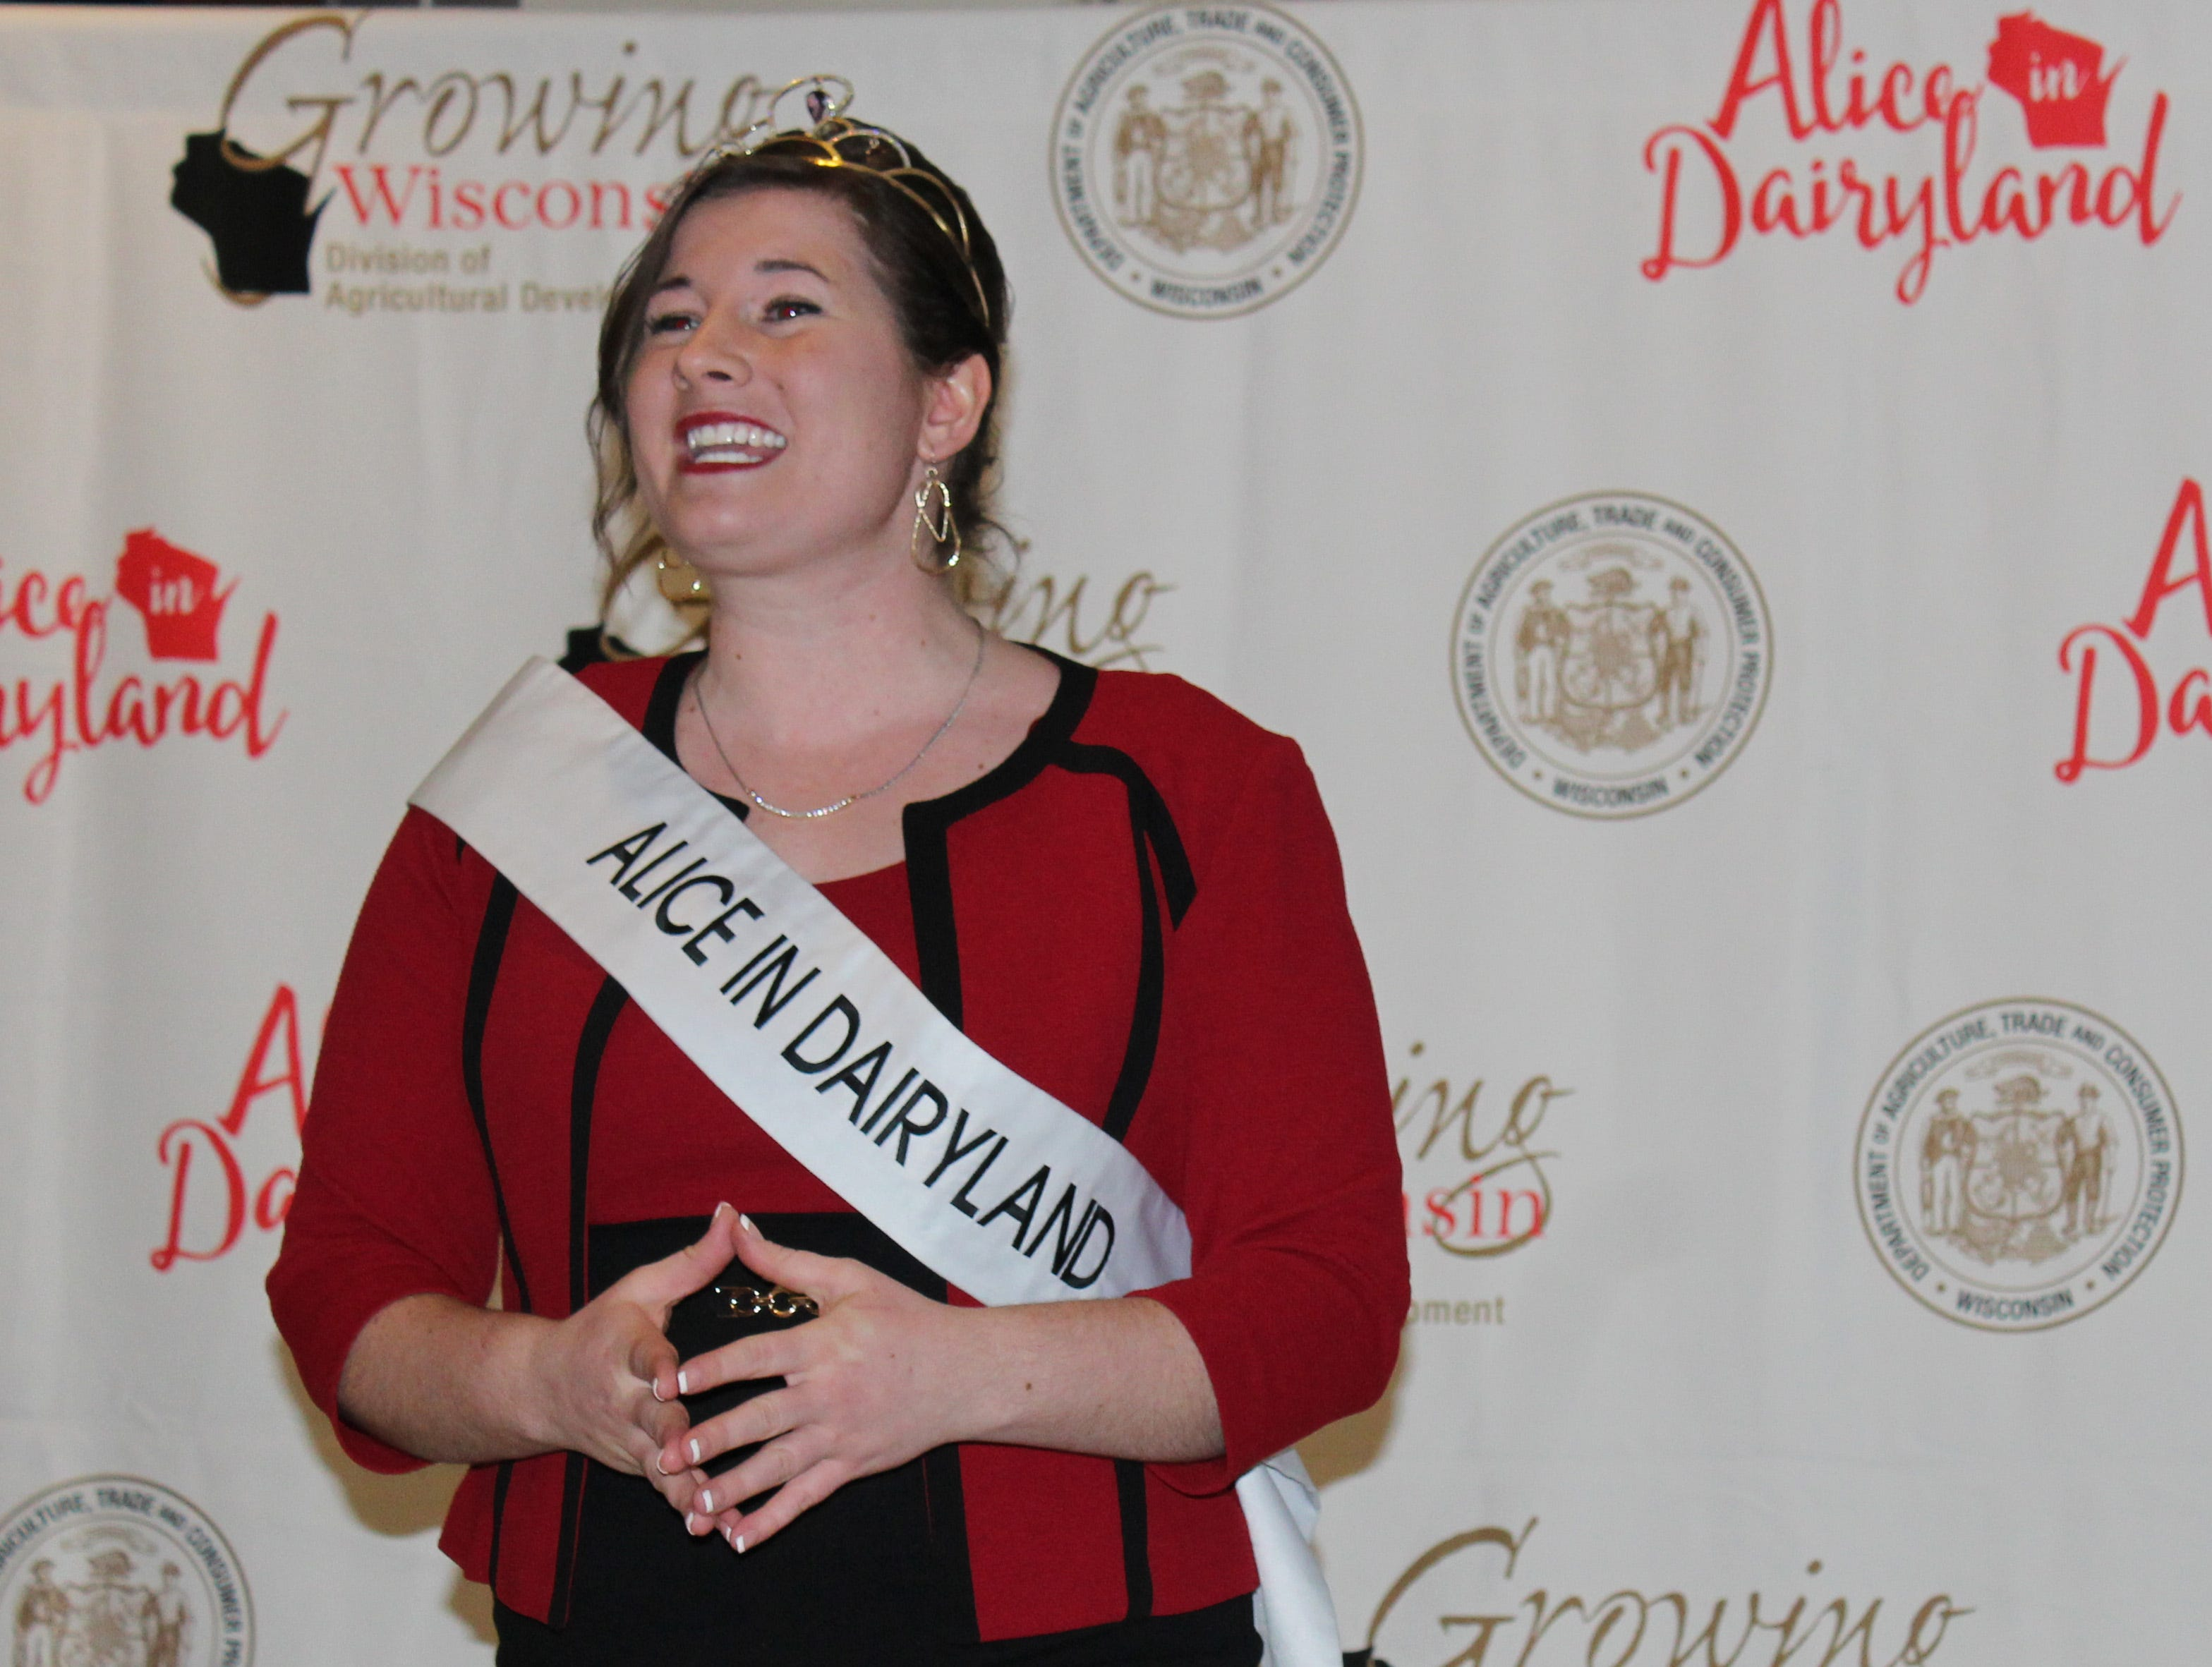 71st Alice in Dairyland Kaitlyn Riley greets those gathered at a press conference to welcome the top candidates for the 72nd Alice in Dairyland.